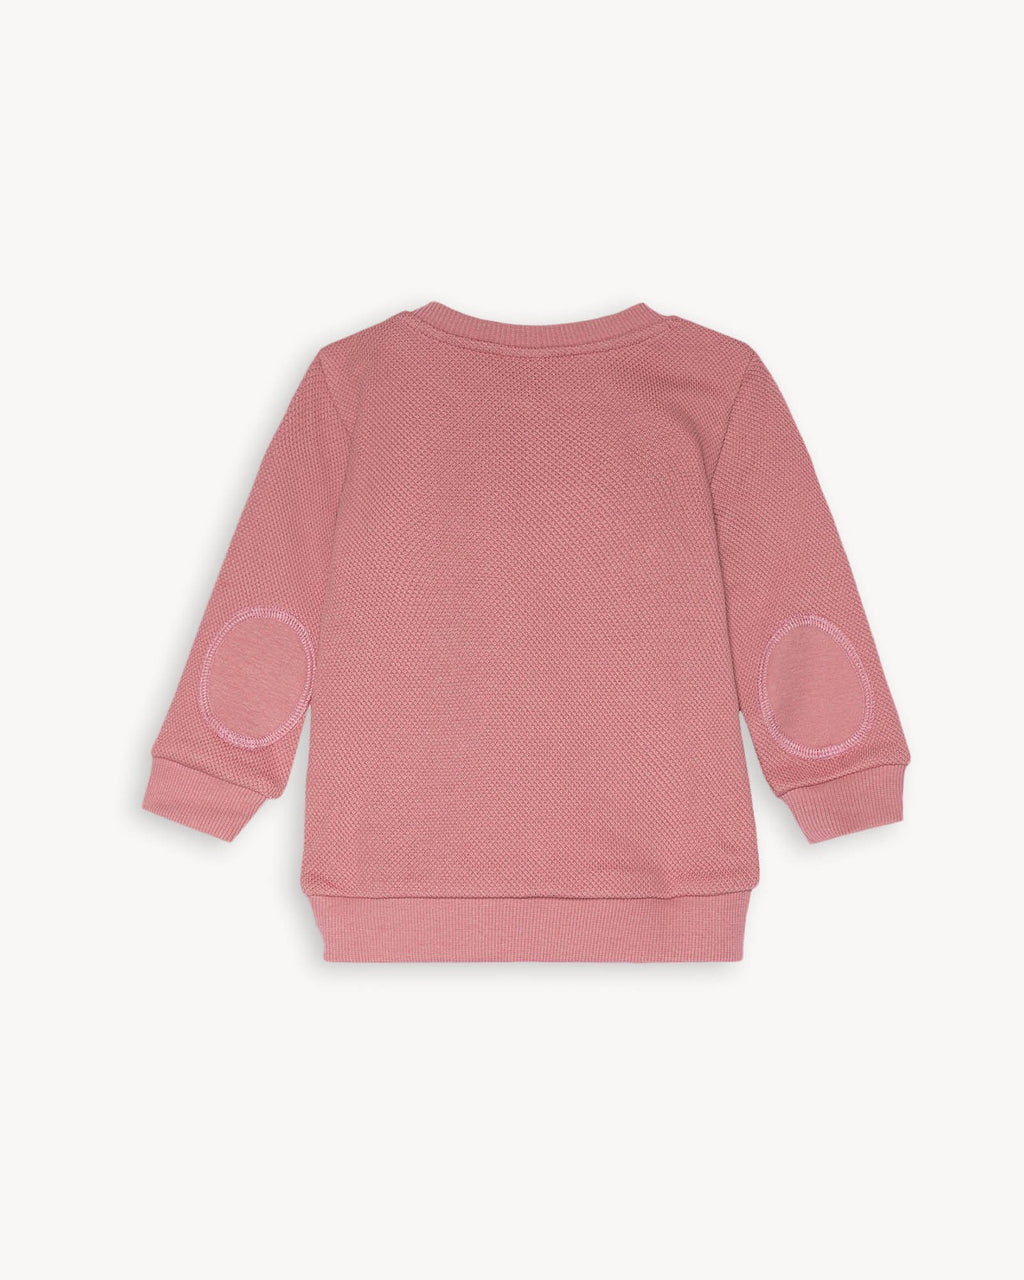 variant_2 | EN Dusty Pink Sweatshirt for Kids and Baby Pique | DE Rosa Pink Pique Sweatshirt for Baby und Kinder